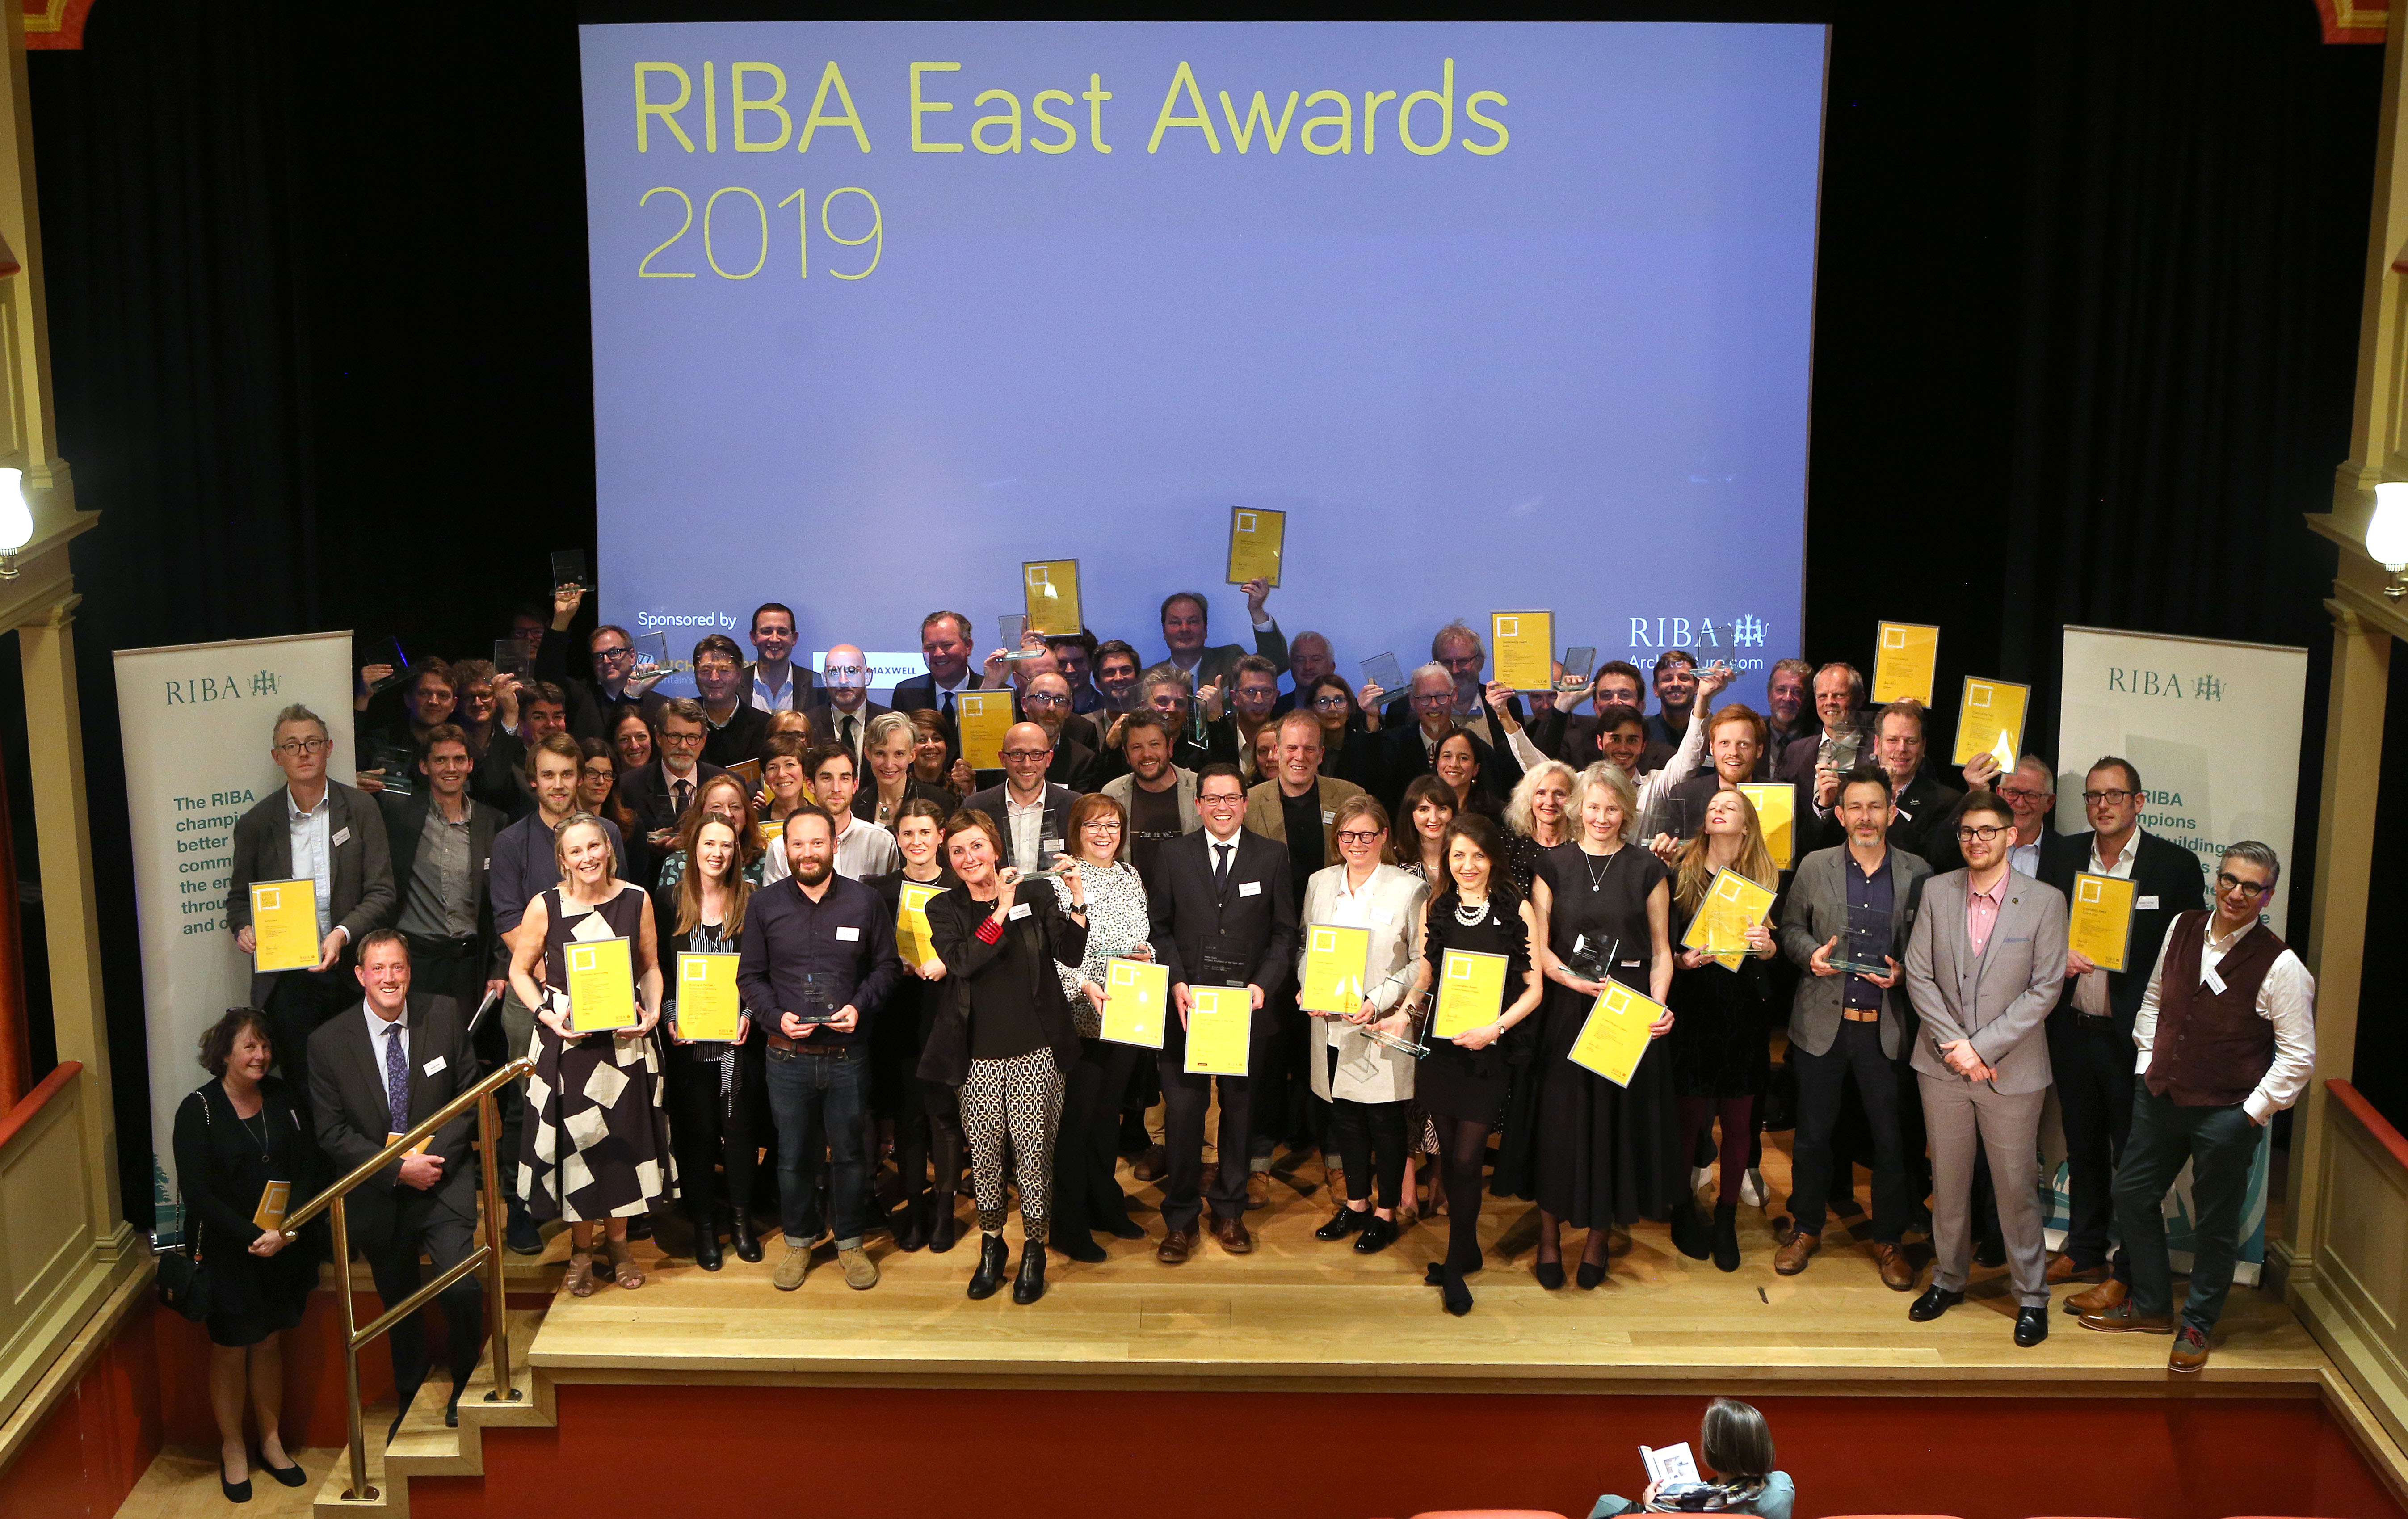 The winners RIBA East 2019